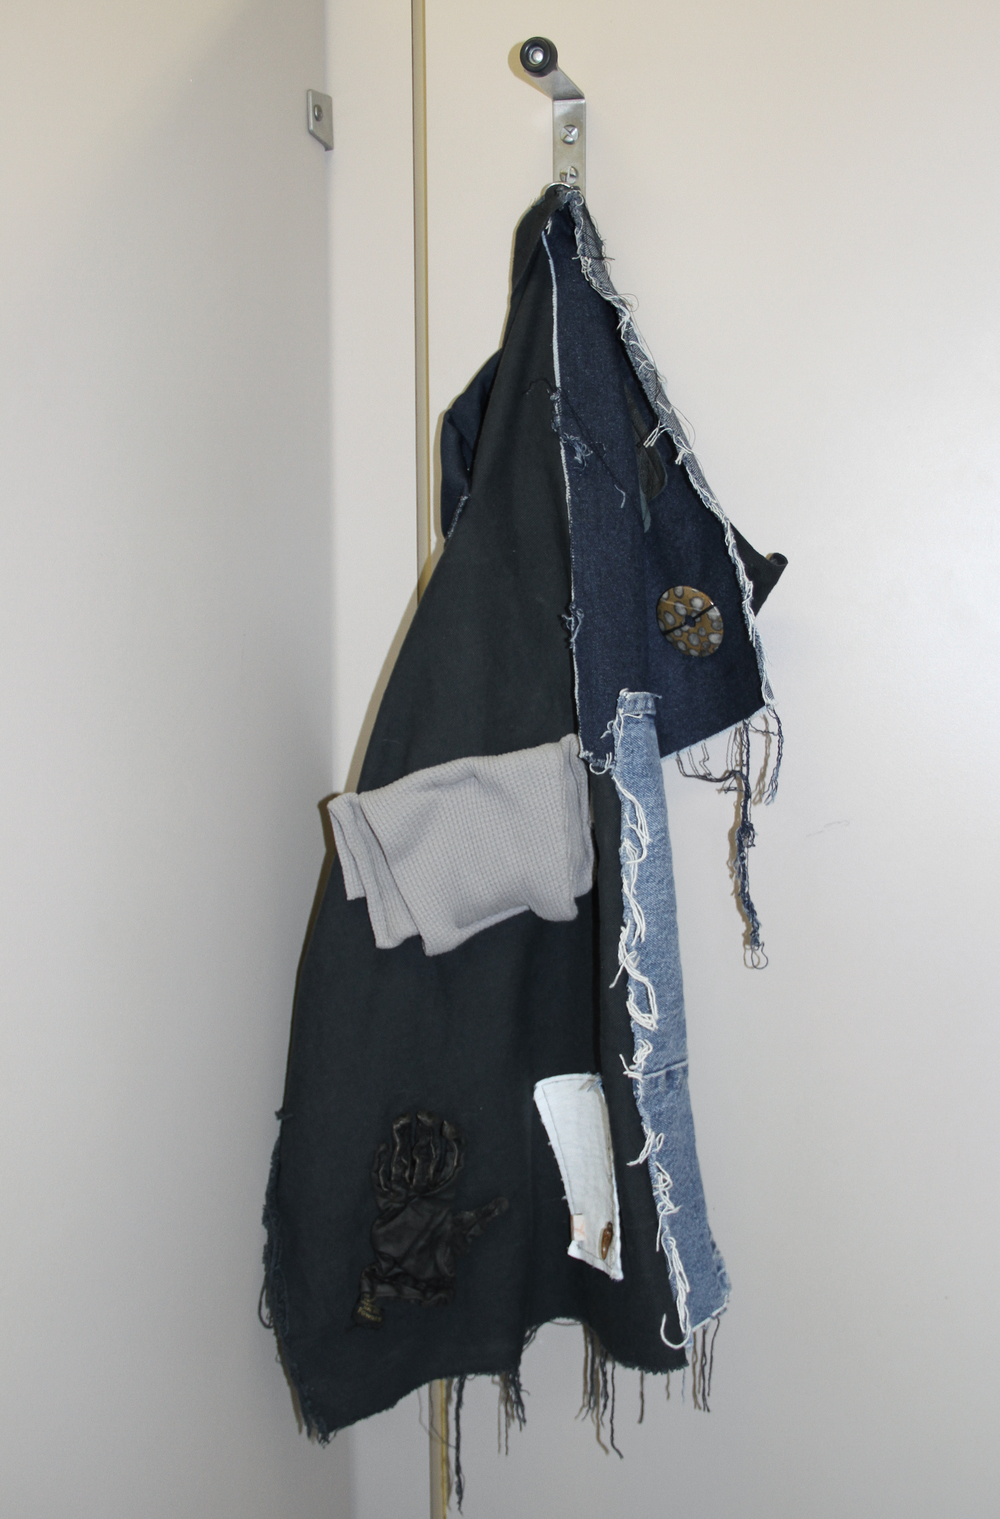 Catherine Czacki © 2016 ,  Not a Master, part III . Denim, leather, beads, stone, plastic, paint. 34 x 17 x 17 in. *Accompanied by text: Open. Courtesy of the artist.